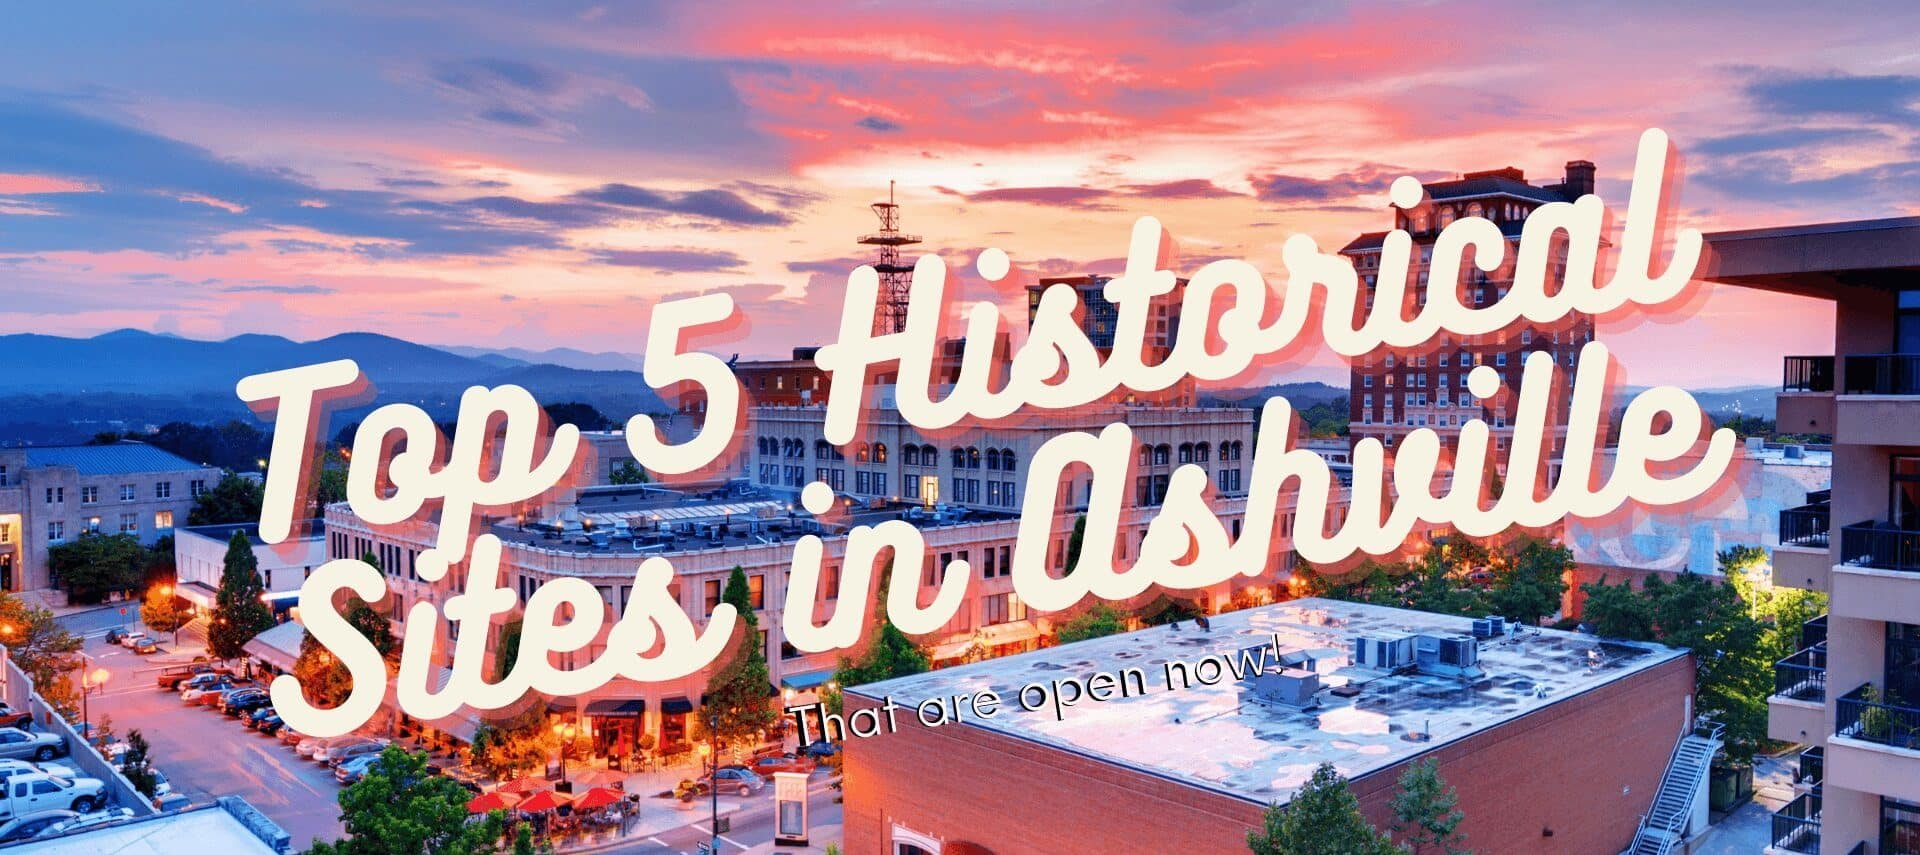 Sunset over downtown Asheville, NC with text: top 5 historc sites in Asheville that are open now